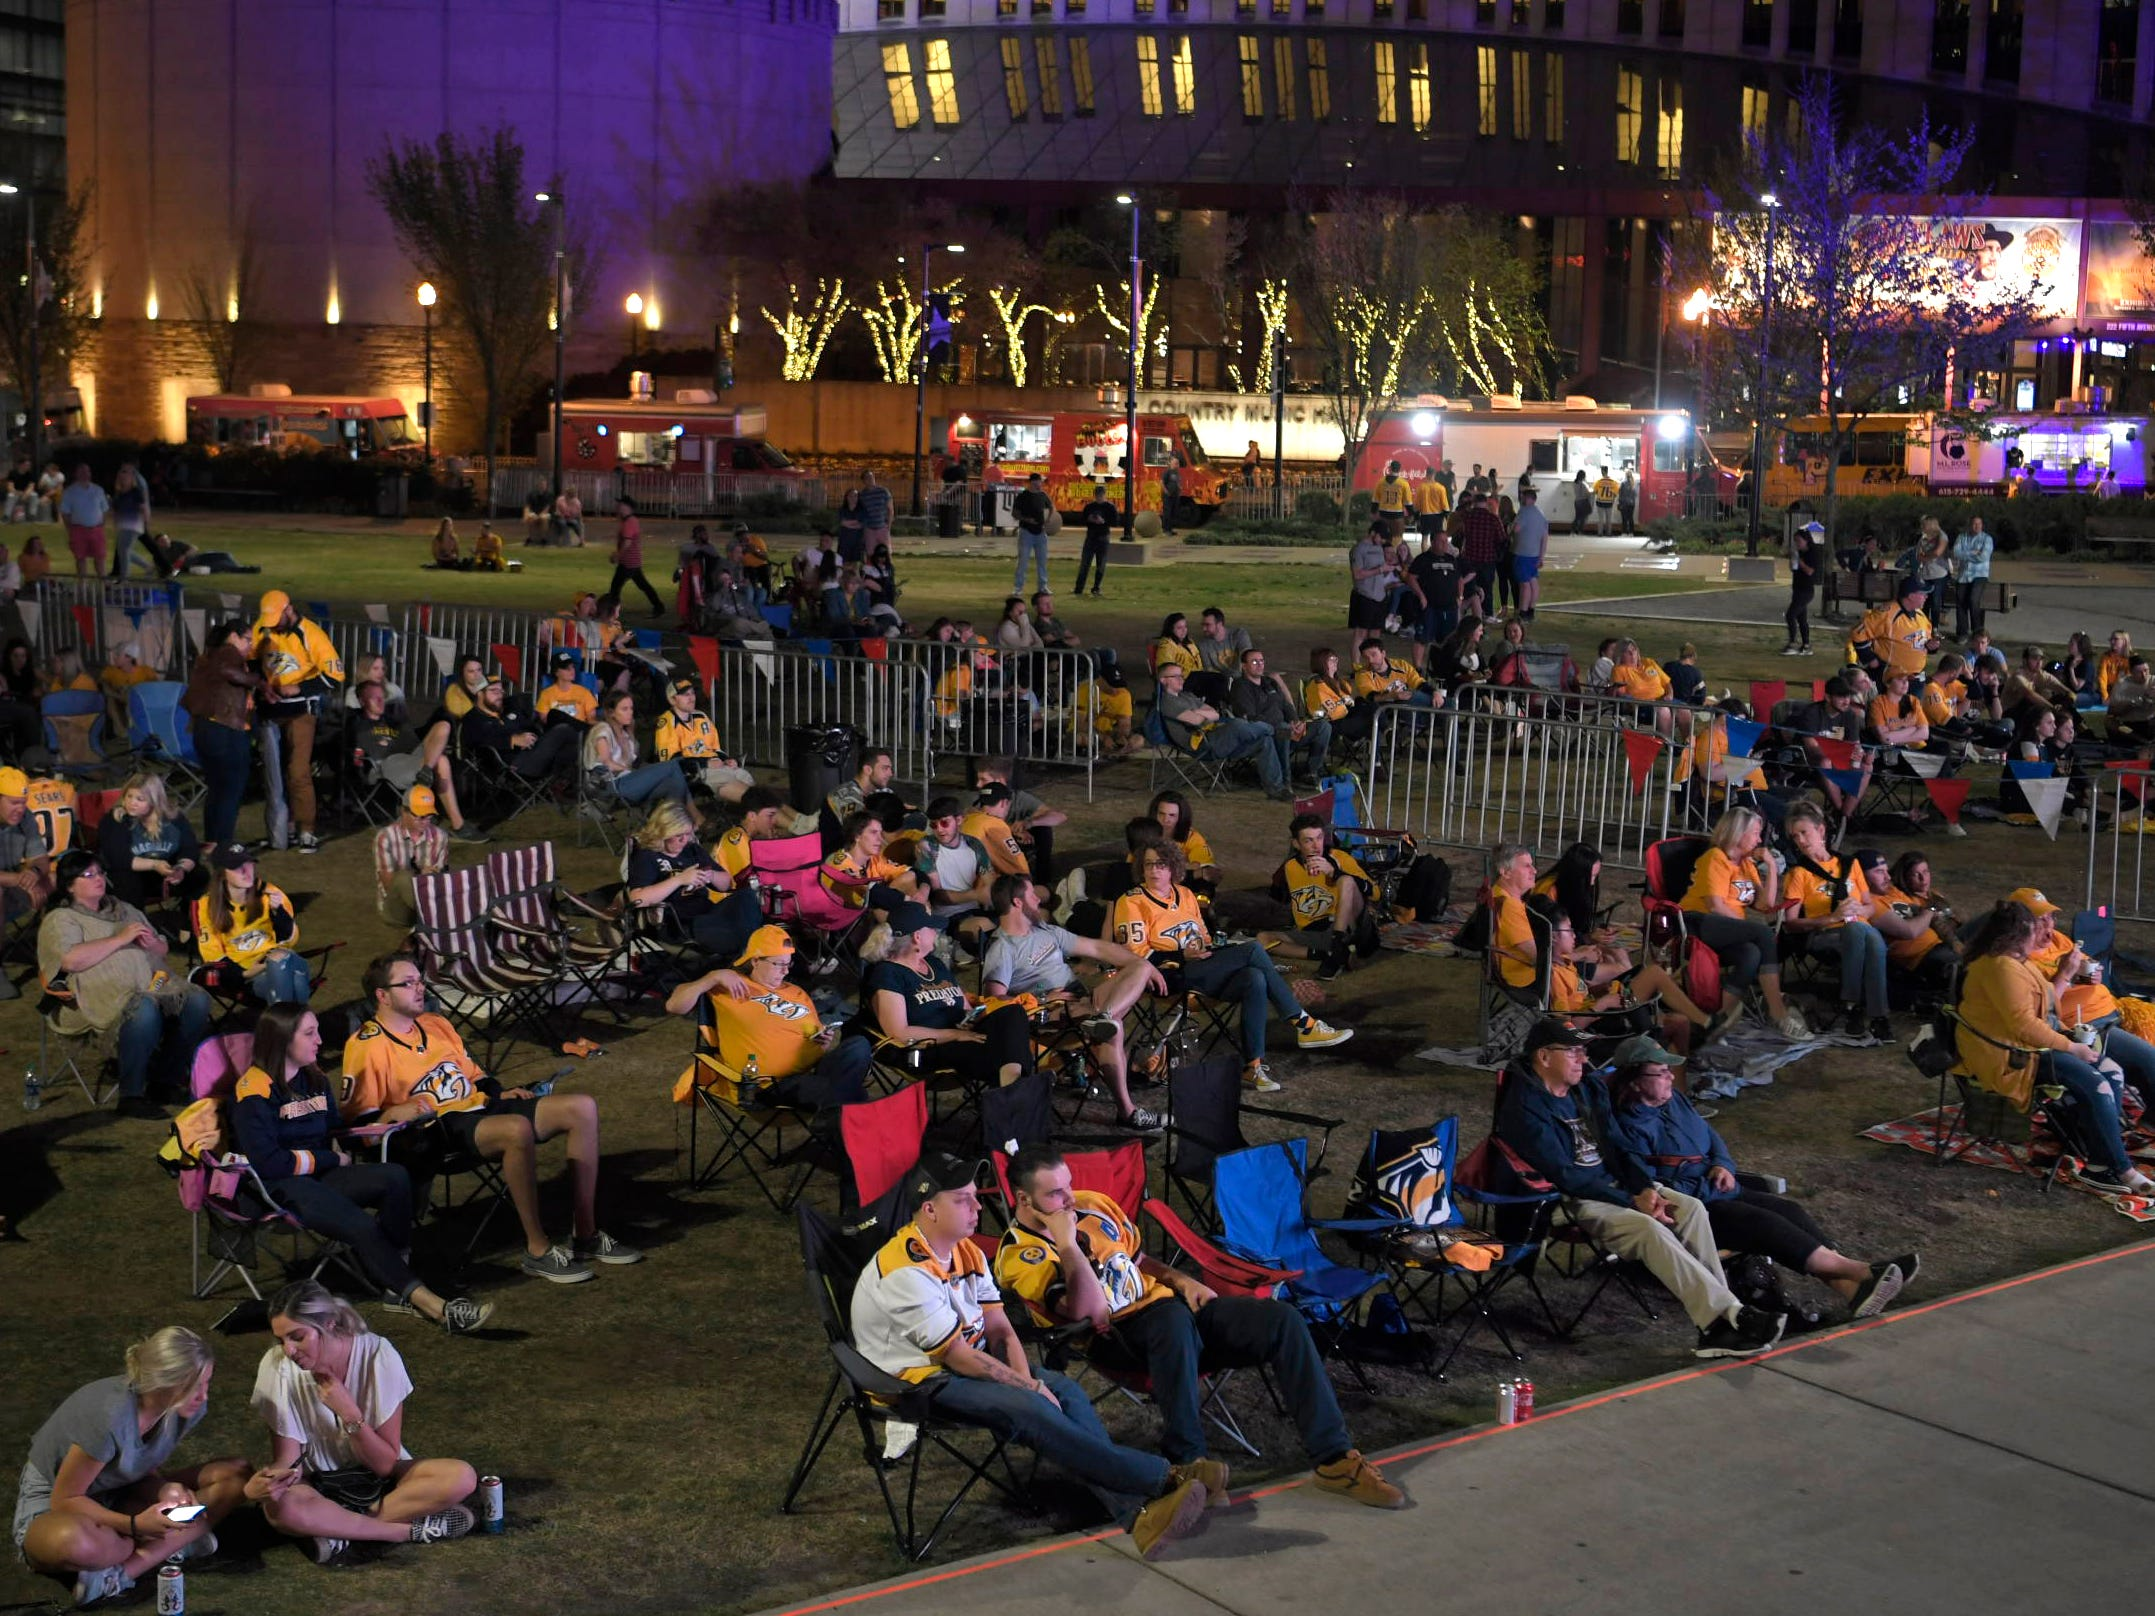 Predators fans gather to watch the game at Preds Party in the Park at Walk of Fame Park in Nashville on Wednesday, April 10, 2019.